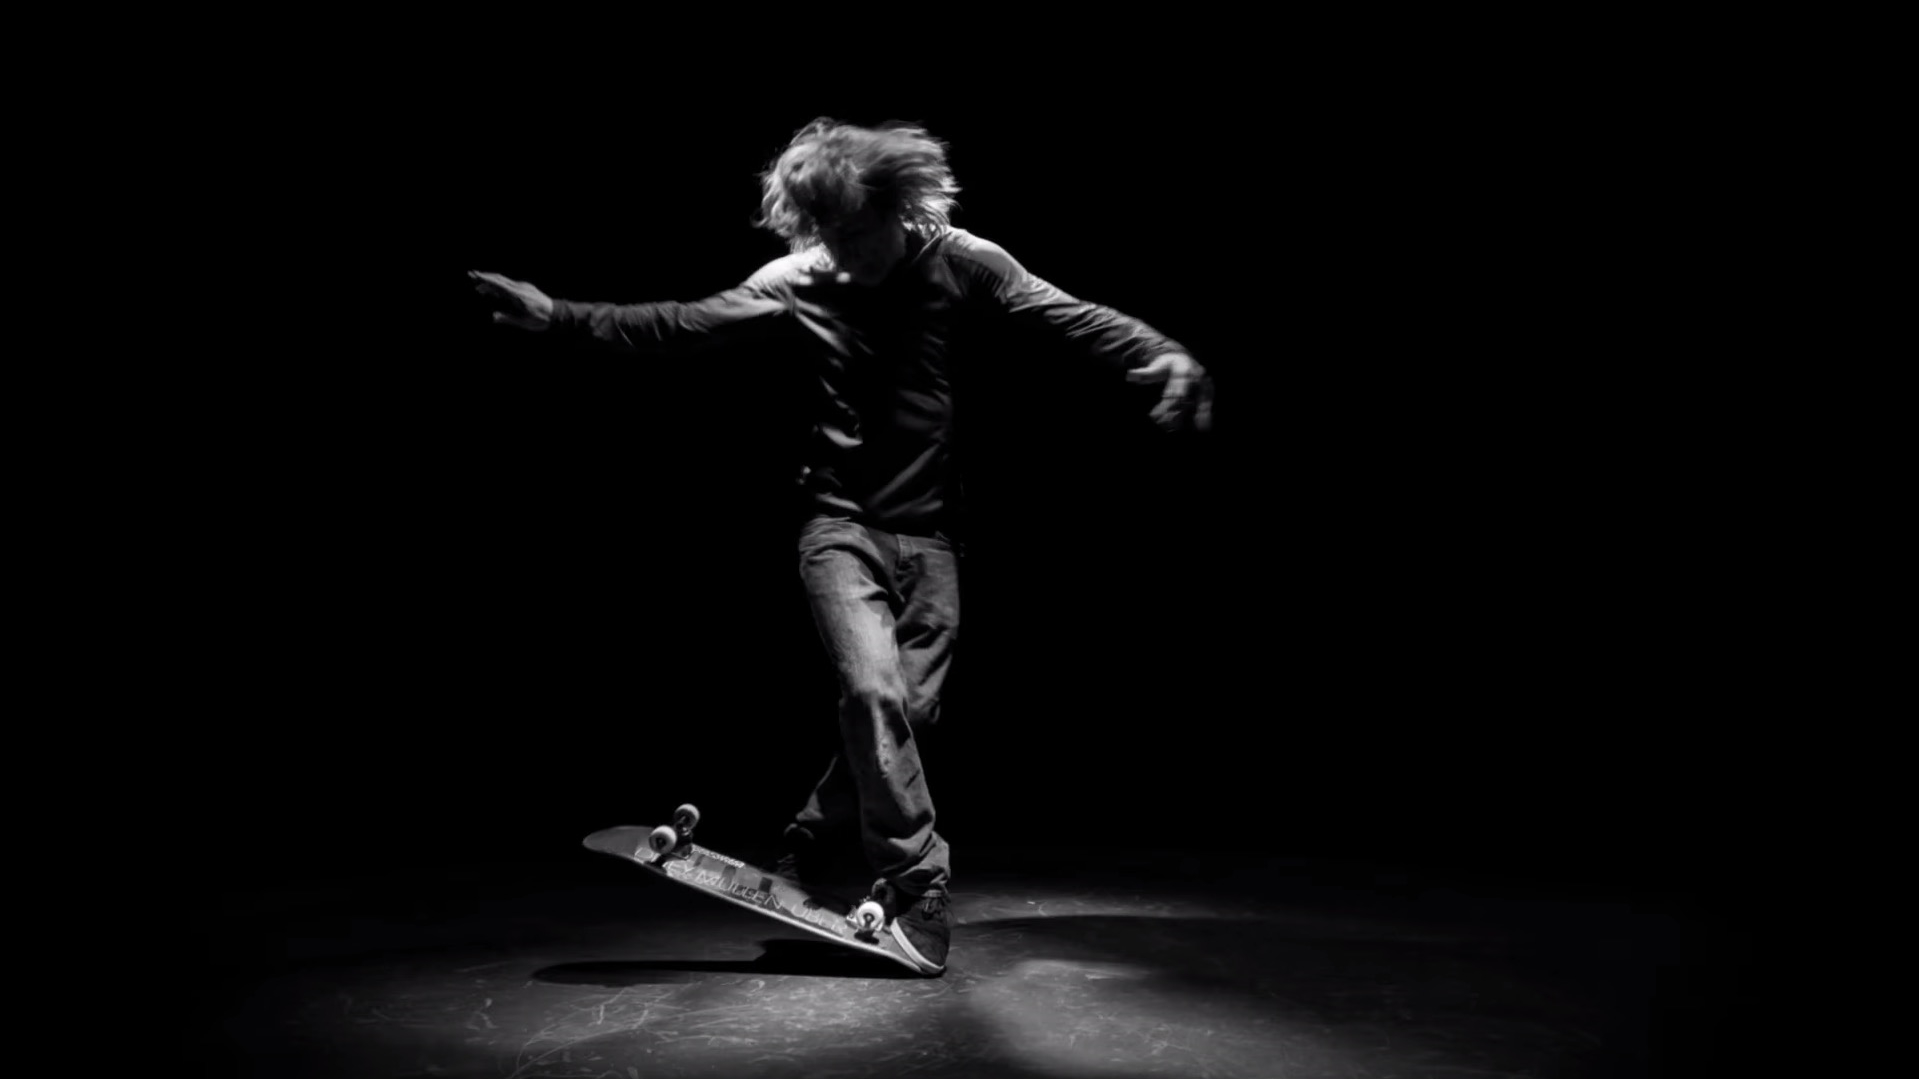 Rodney Mullen Liminal 2016 video almost skateboards sebring revolution